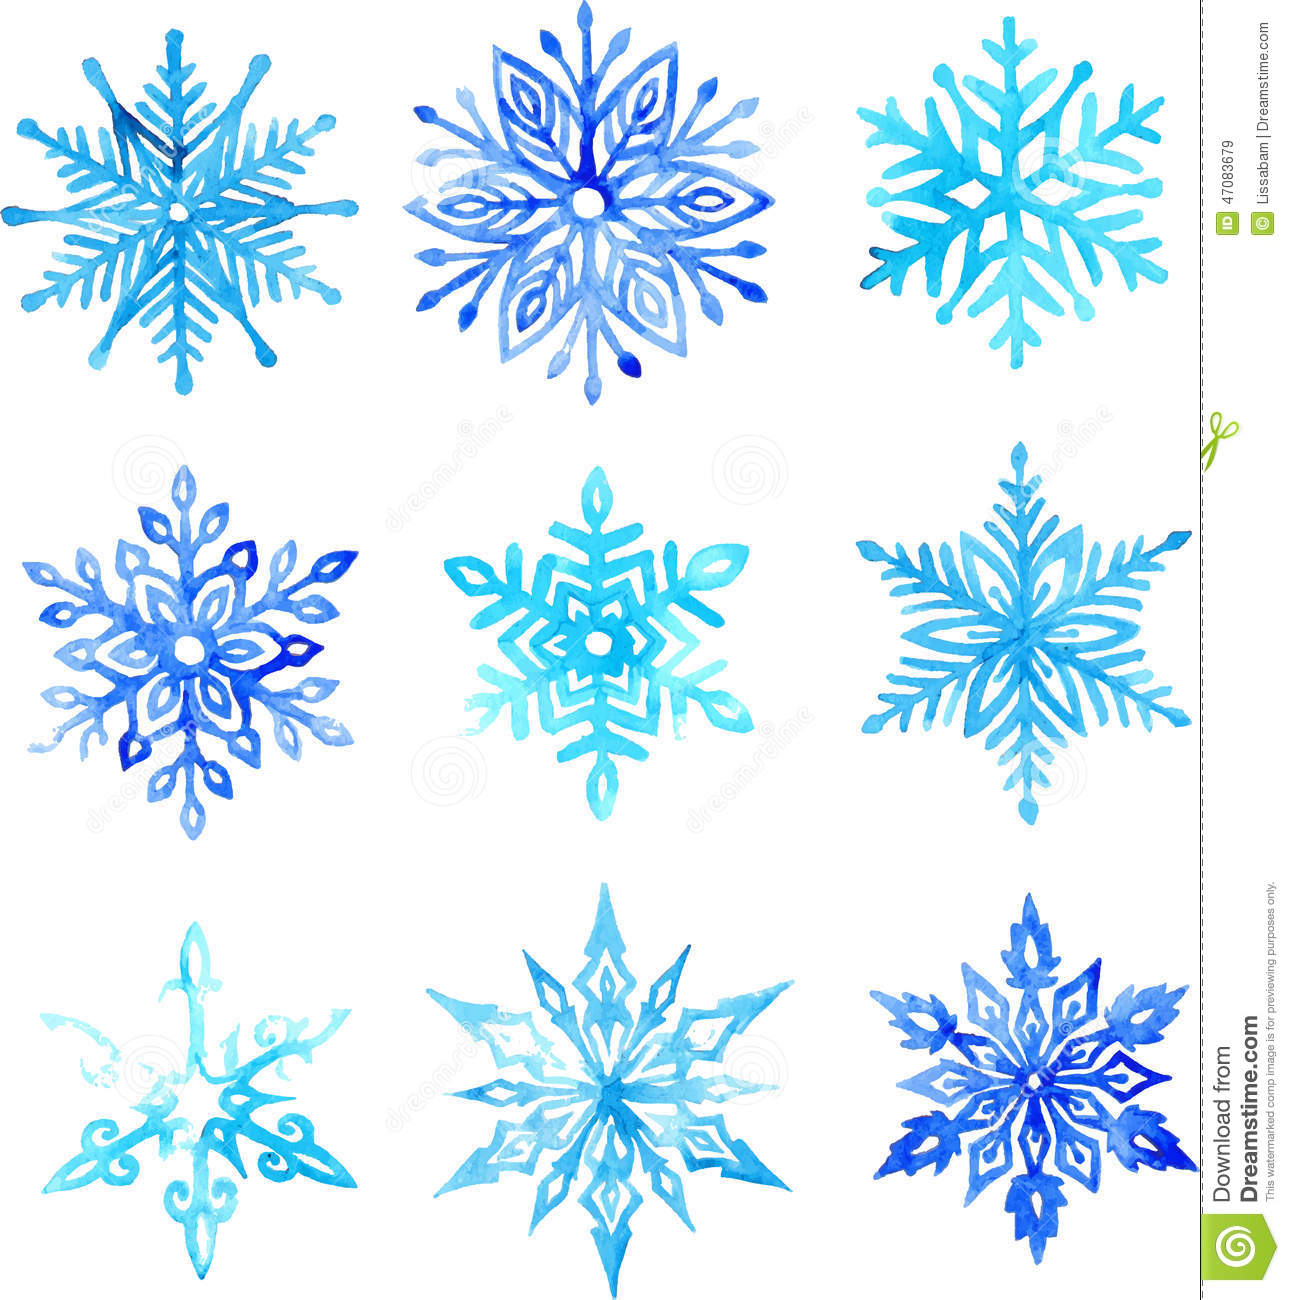 Snowflake free vector download 1673 Free vector for